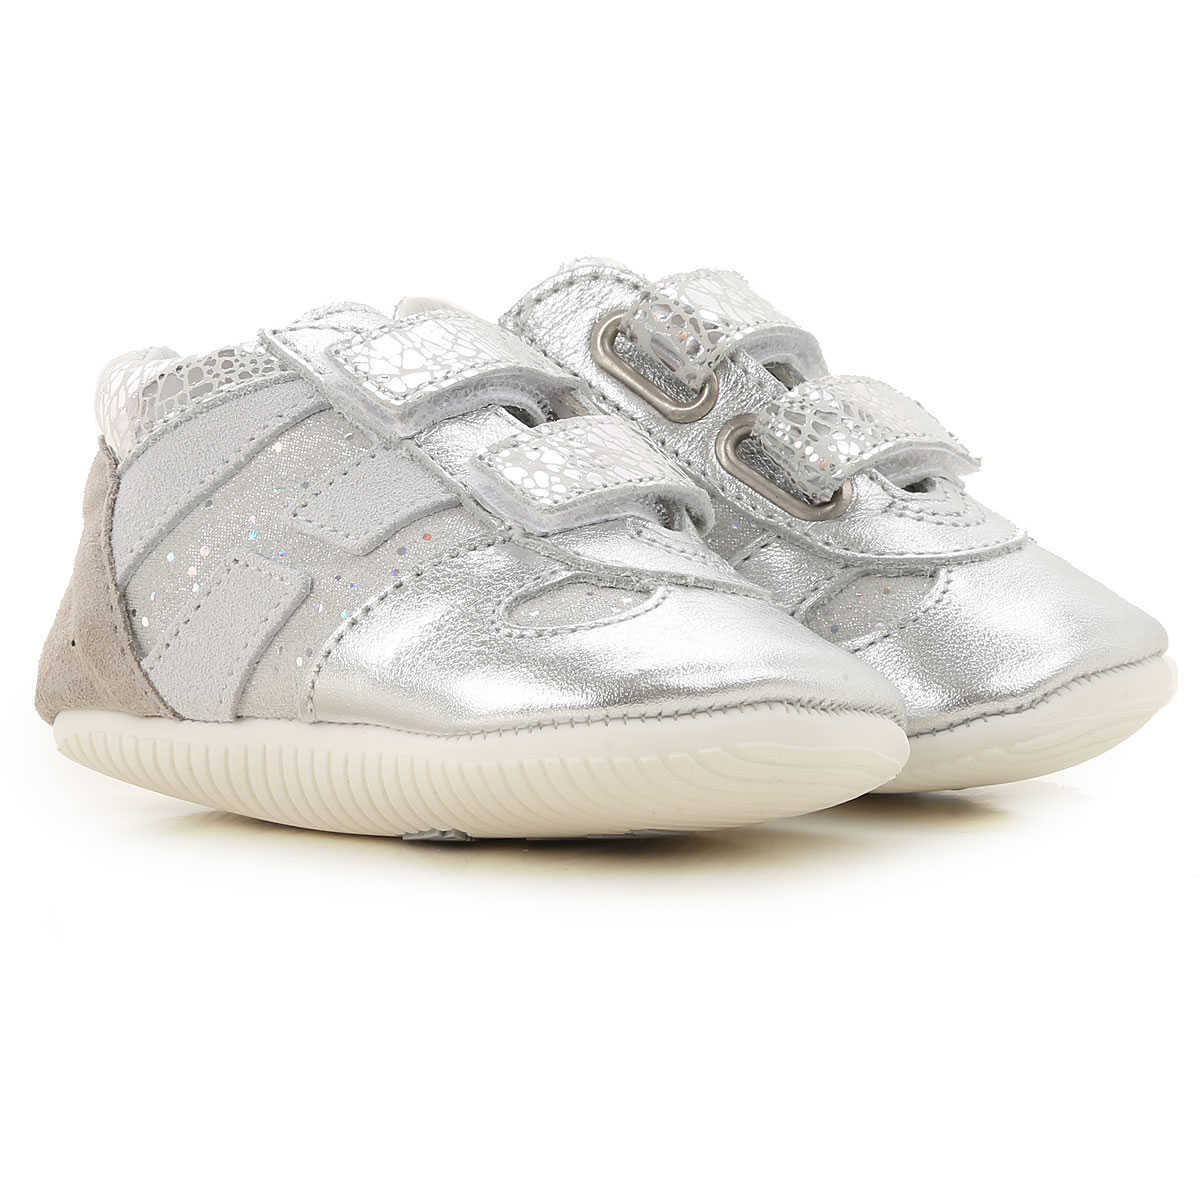 Hogan Baby Shoes for Girls On Sale Grey - GOOFASH -